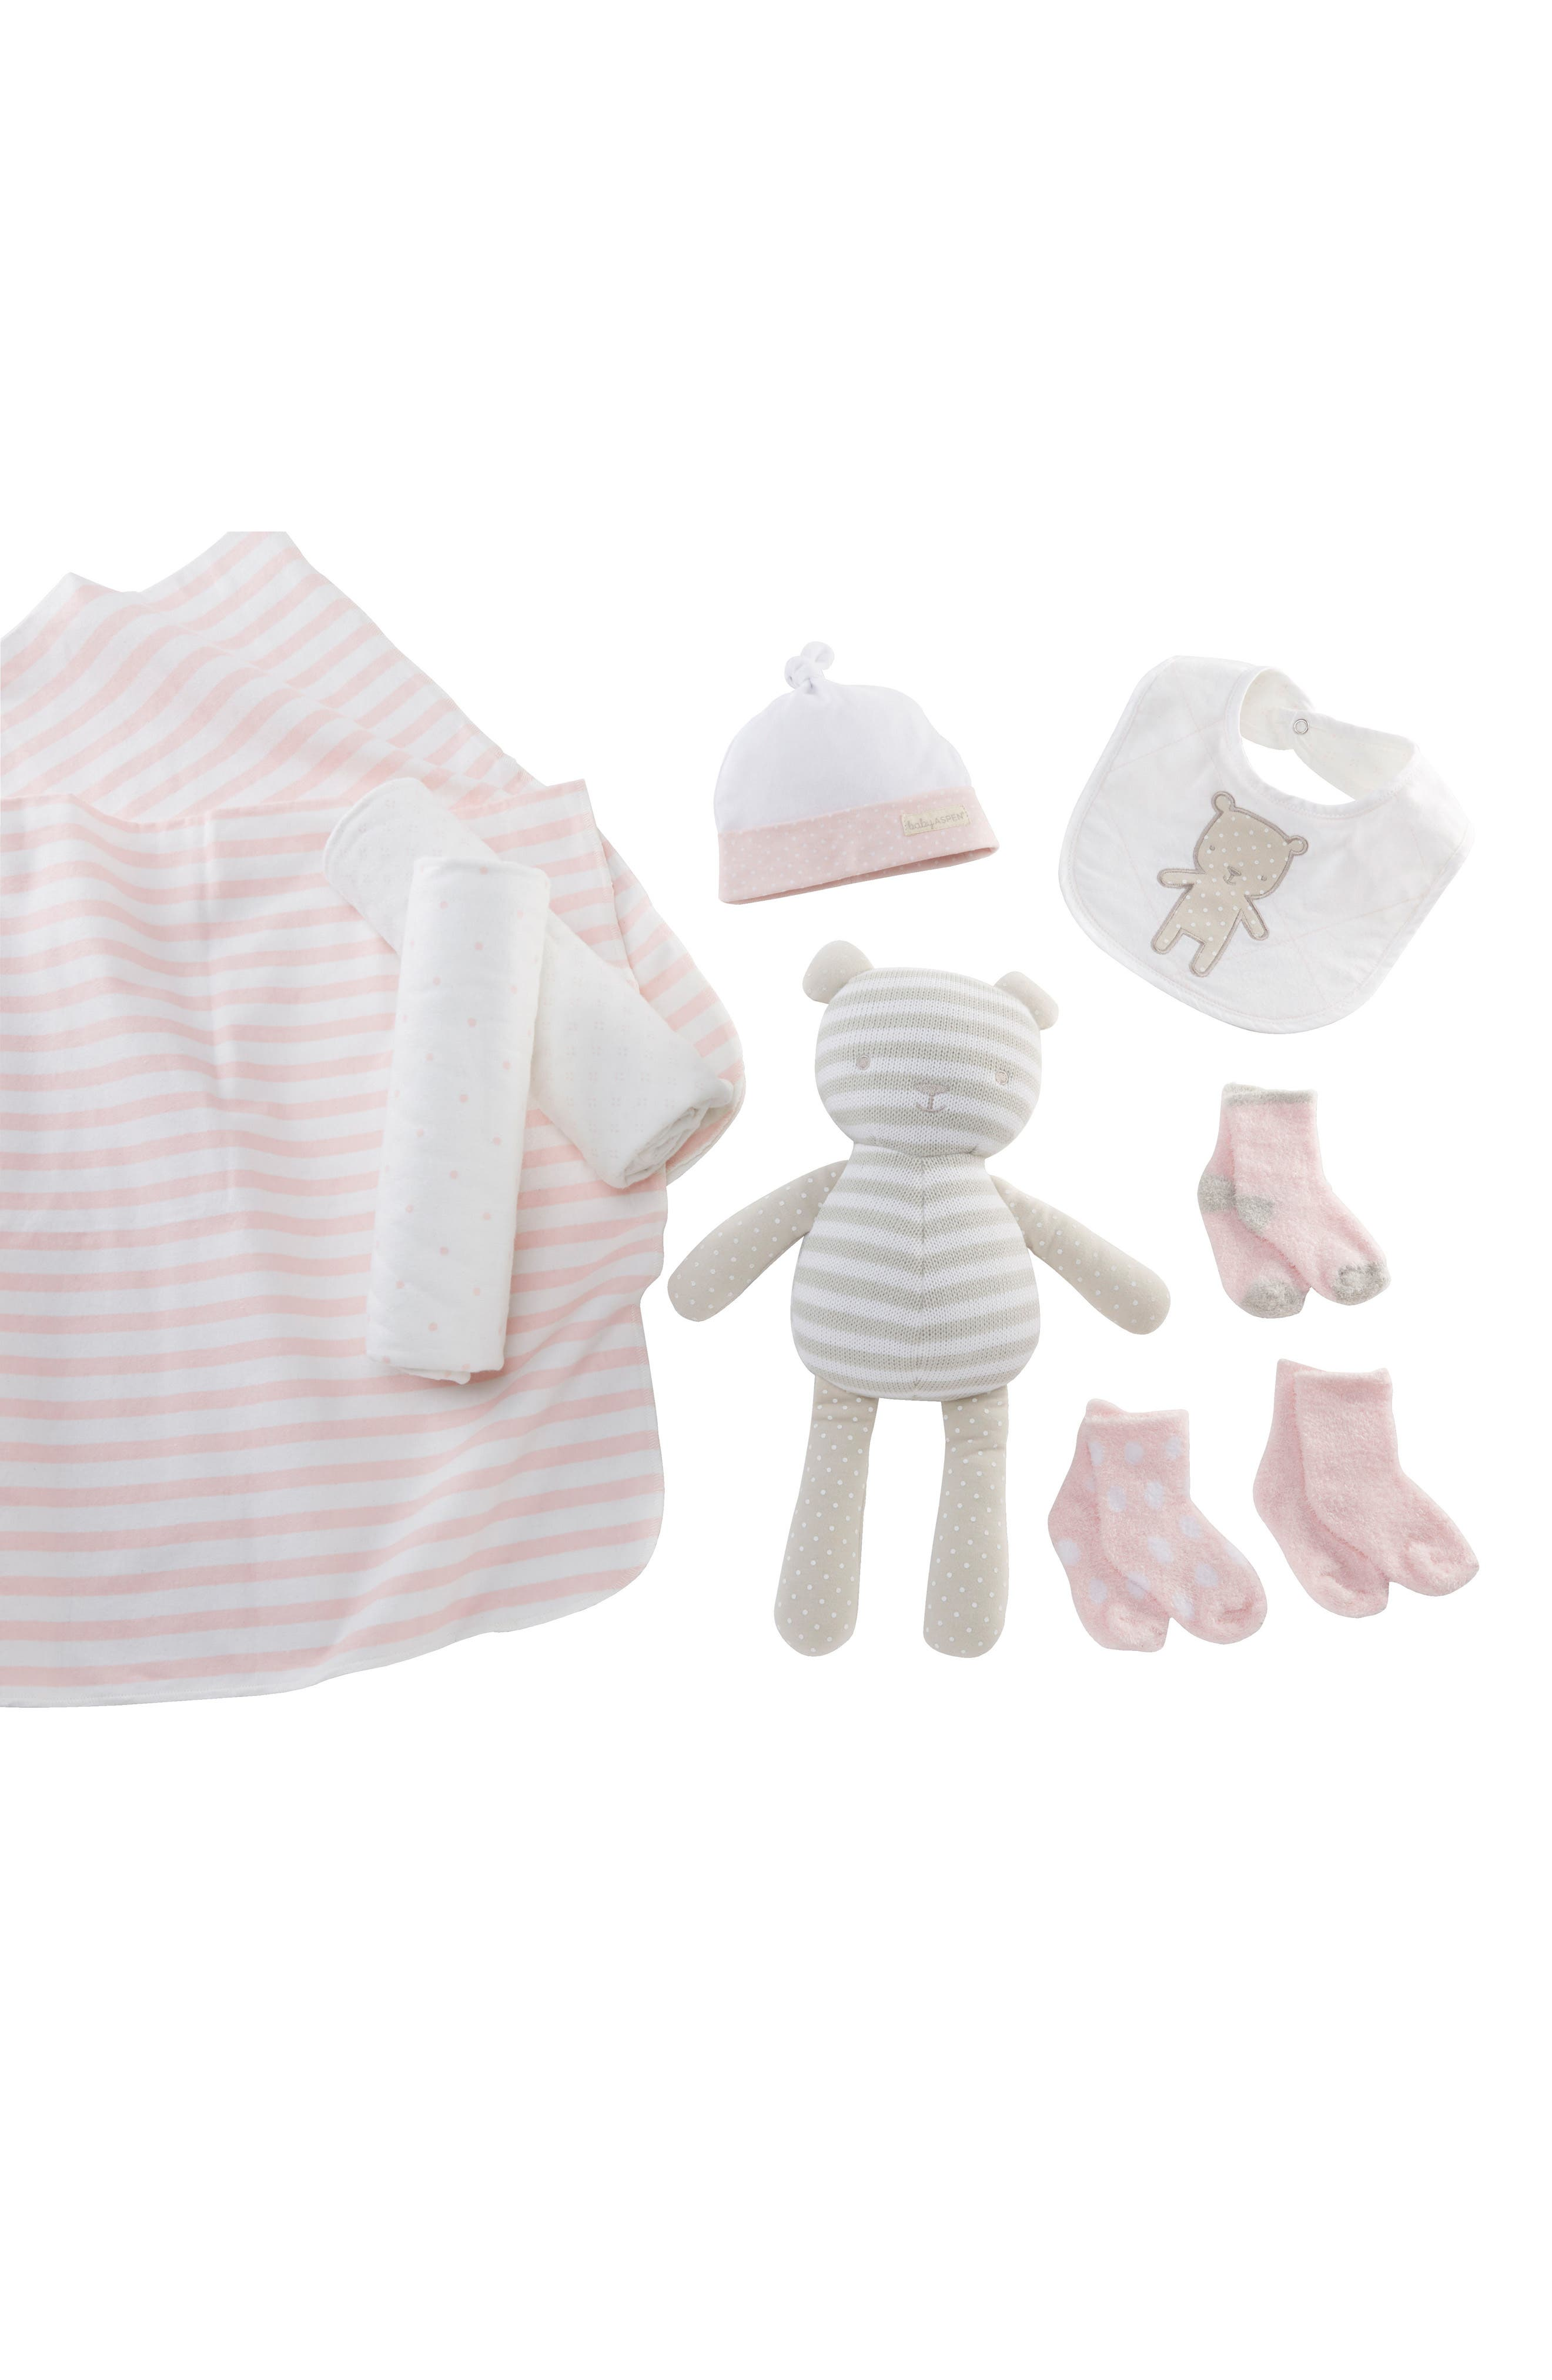 Beary Special 10-Piece Gift Set,                             Main thumbnail 1, color,                             Pink